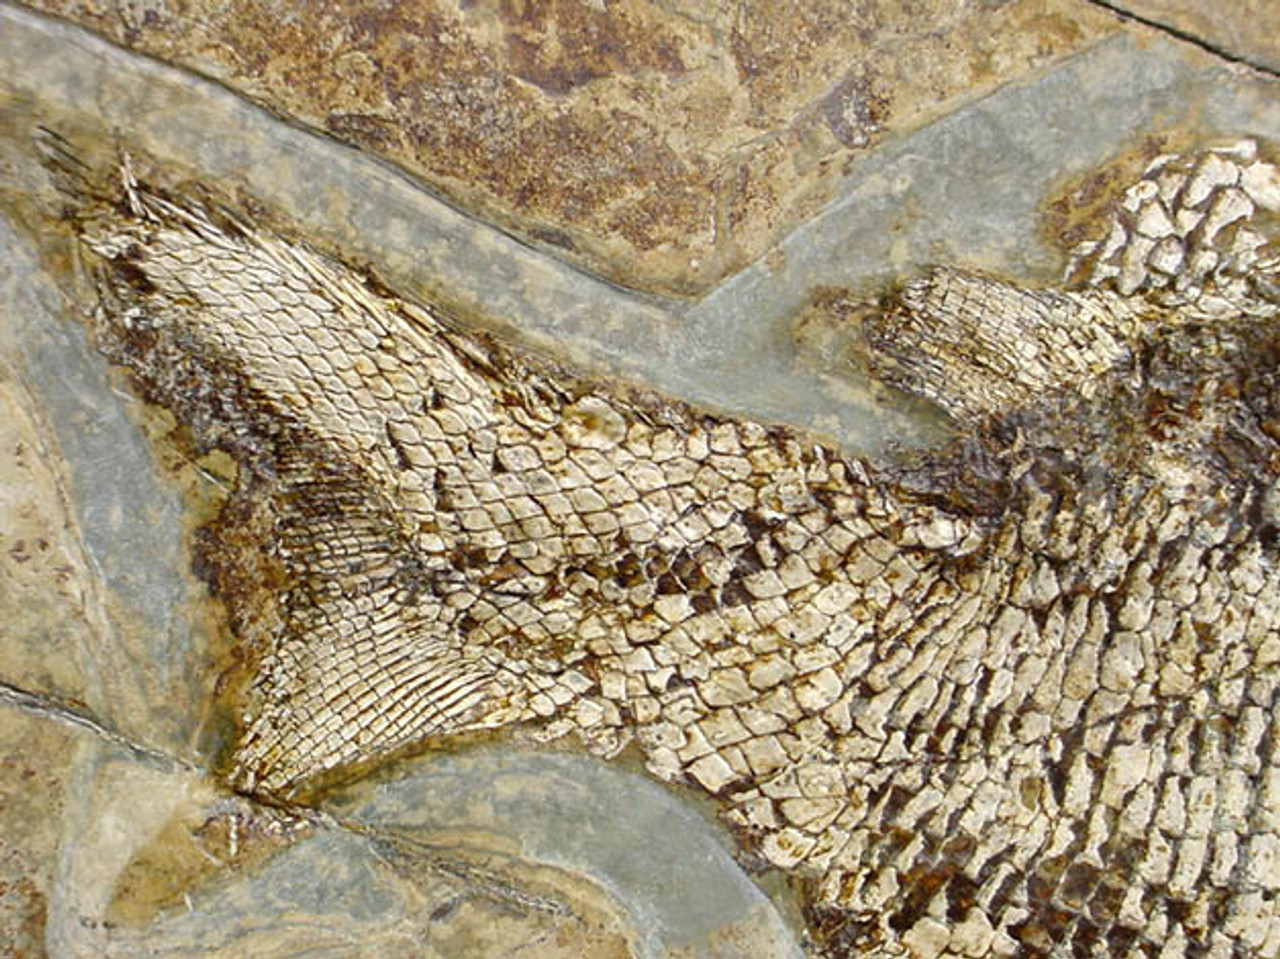 FG003 - RARE AEDUELLA FISH FROM THE EARLY PERMIAN WITH SPINY SHARKS ON SLAB